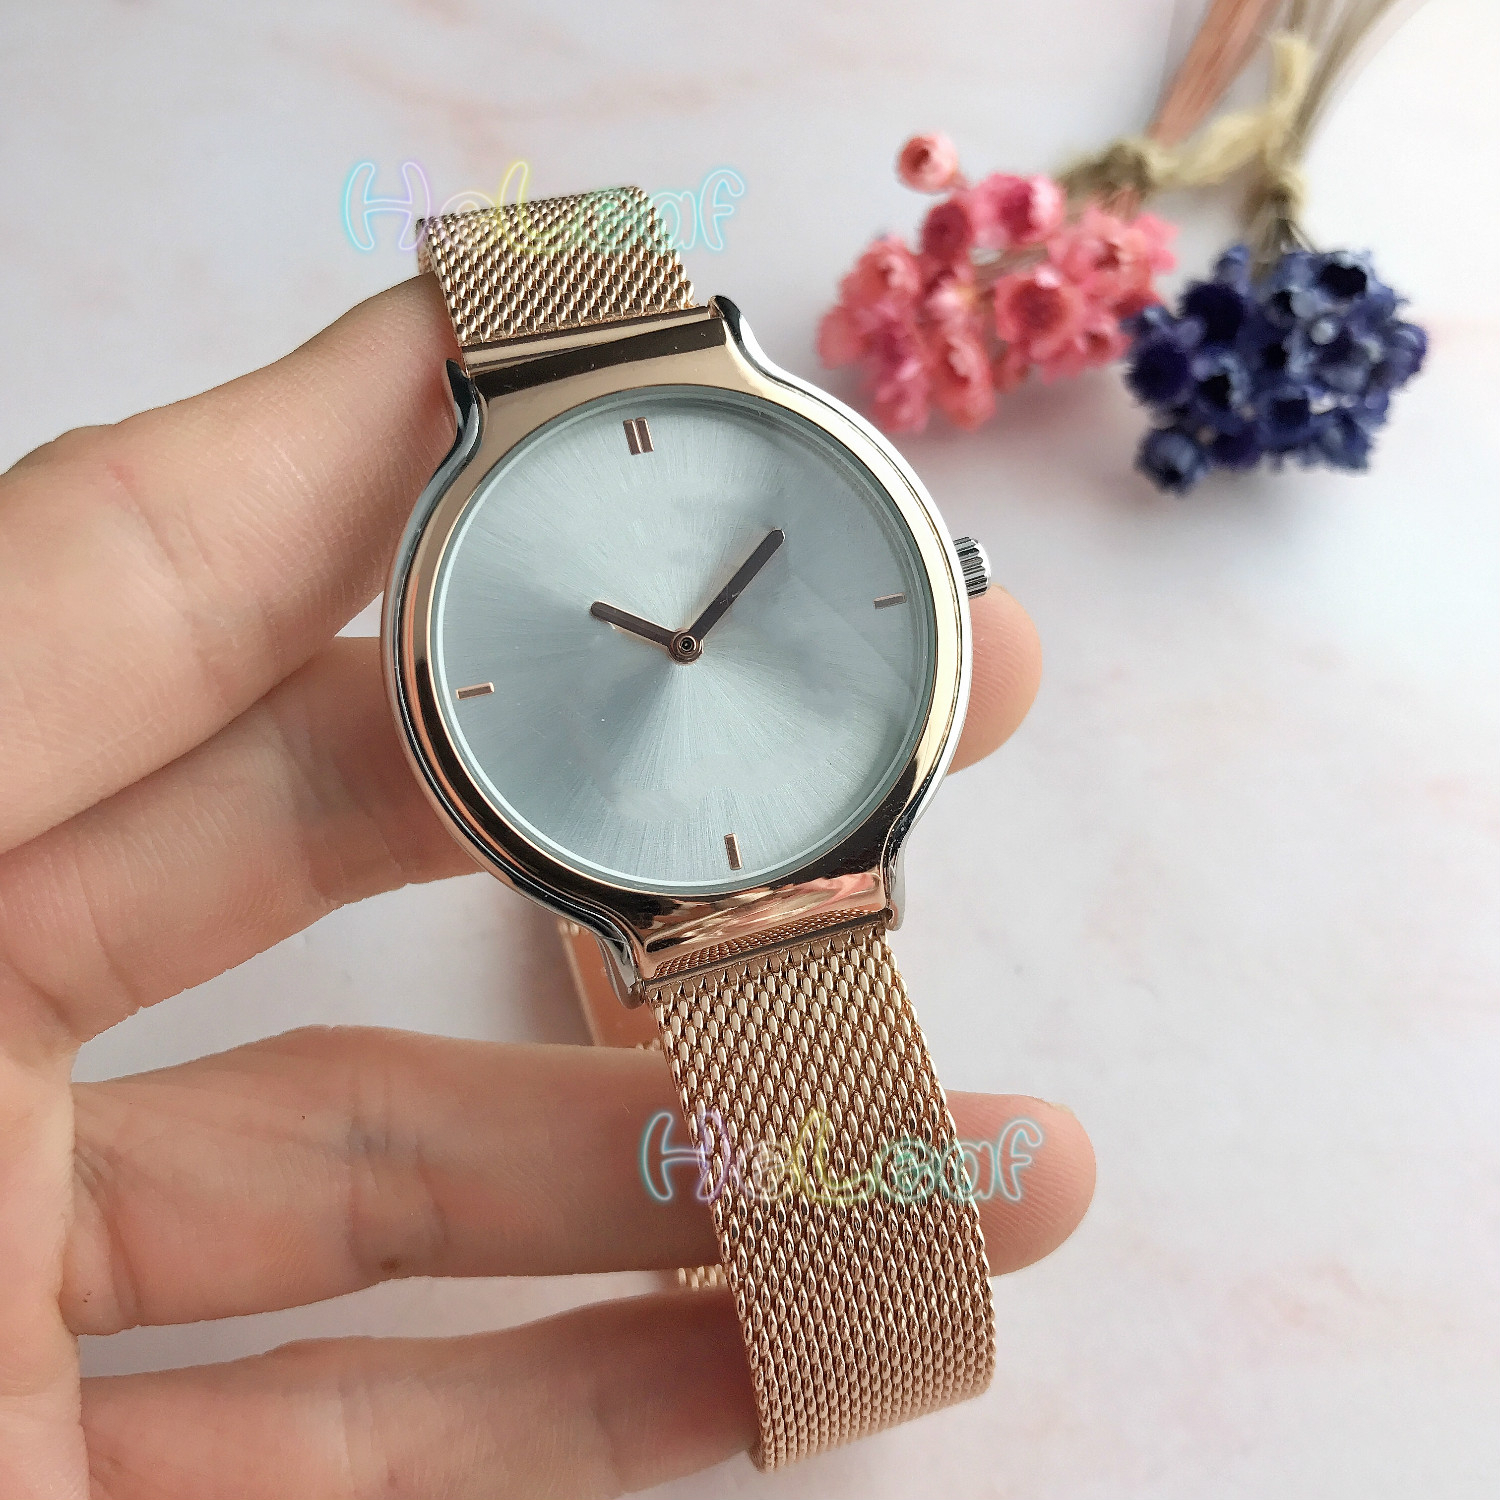 Luxury Reloj Mujer Hot Sale Newest Top Lady Silver Gold Steel Brand Bear Quartz Watch Female Clock Montre Femme Relogio Feminino